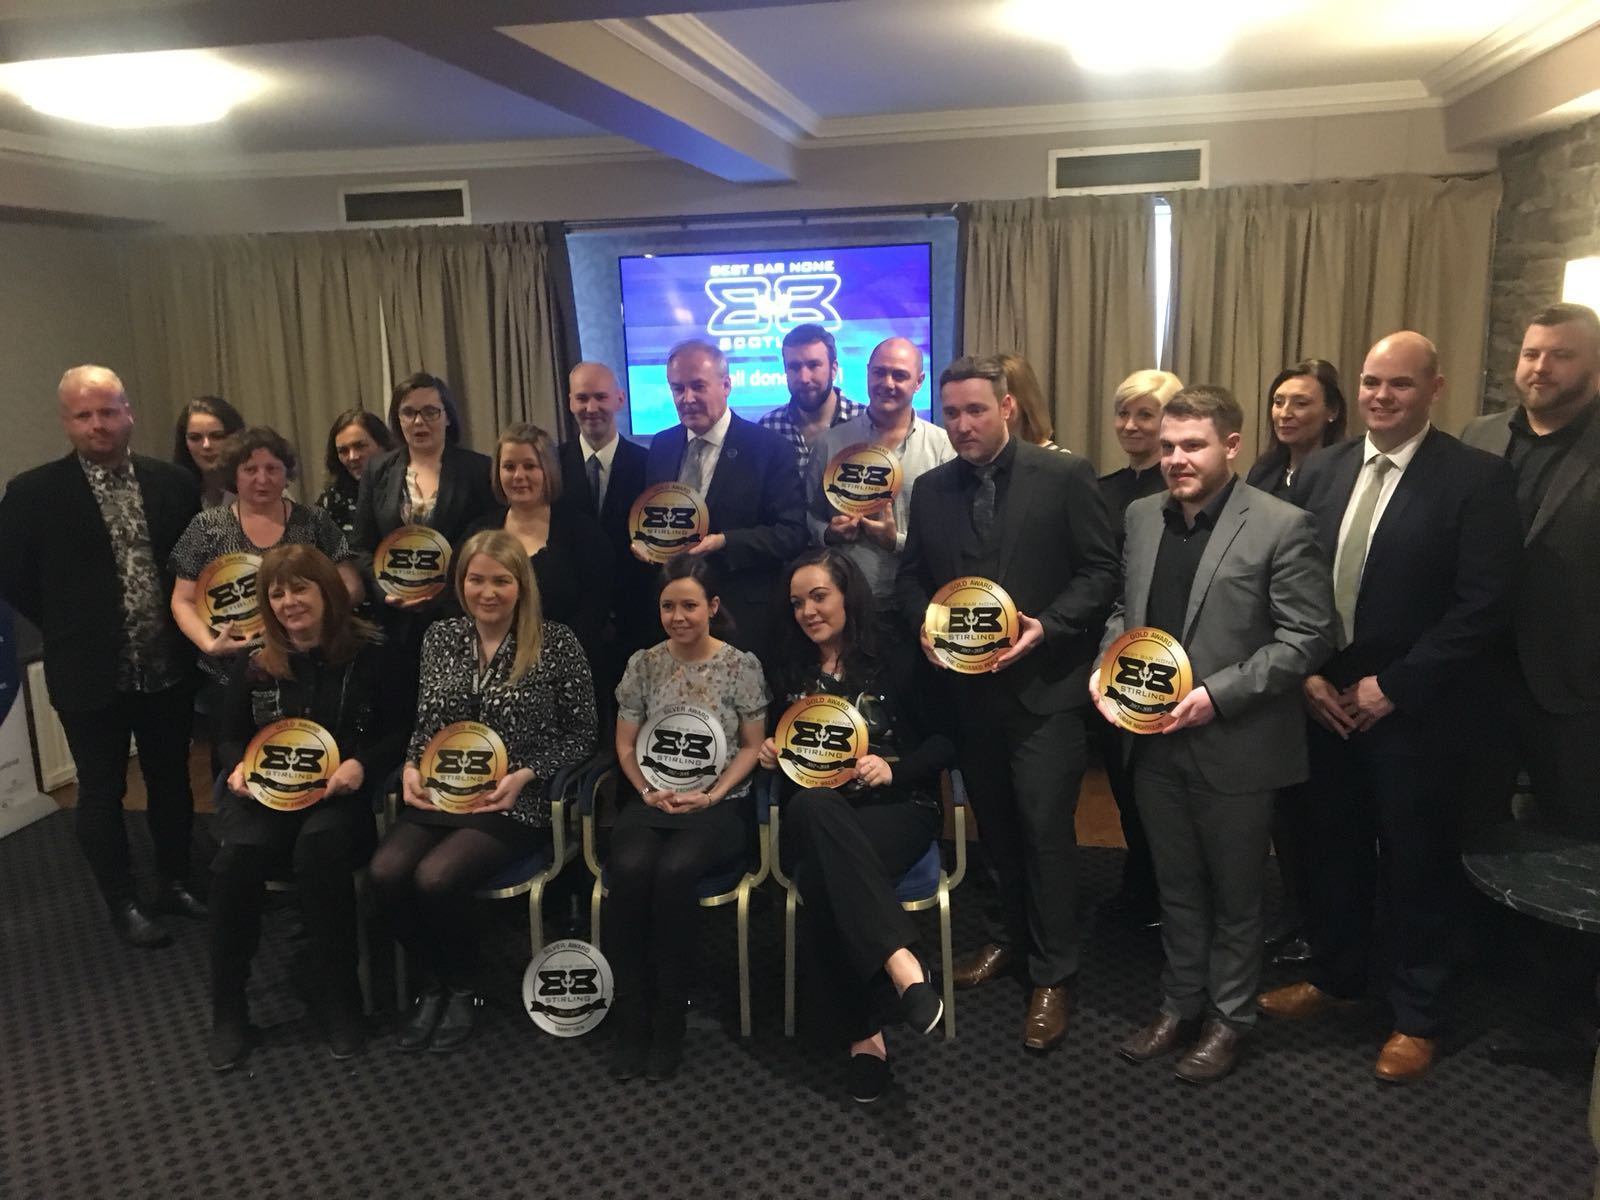 Representatives of licensed premises in Stirling and Dunblane gathered at the Golden Lion to receive Best Bar Non accreditation